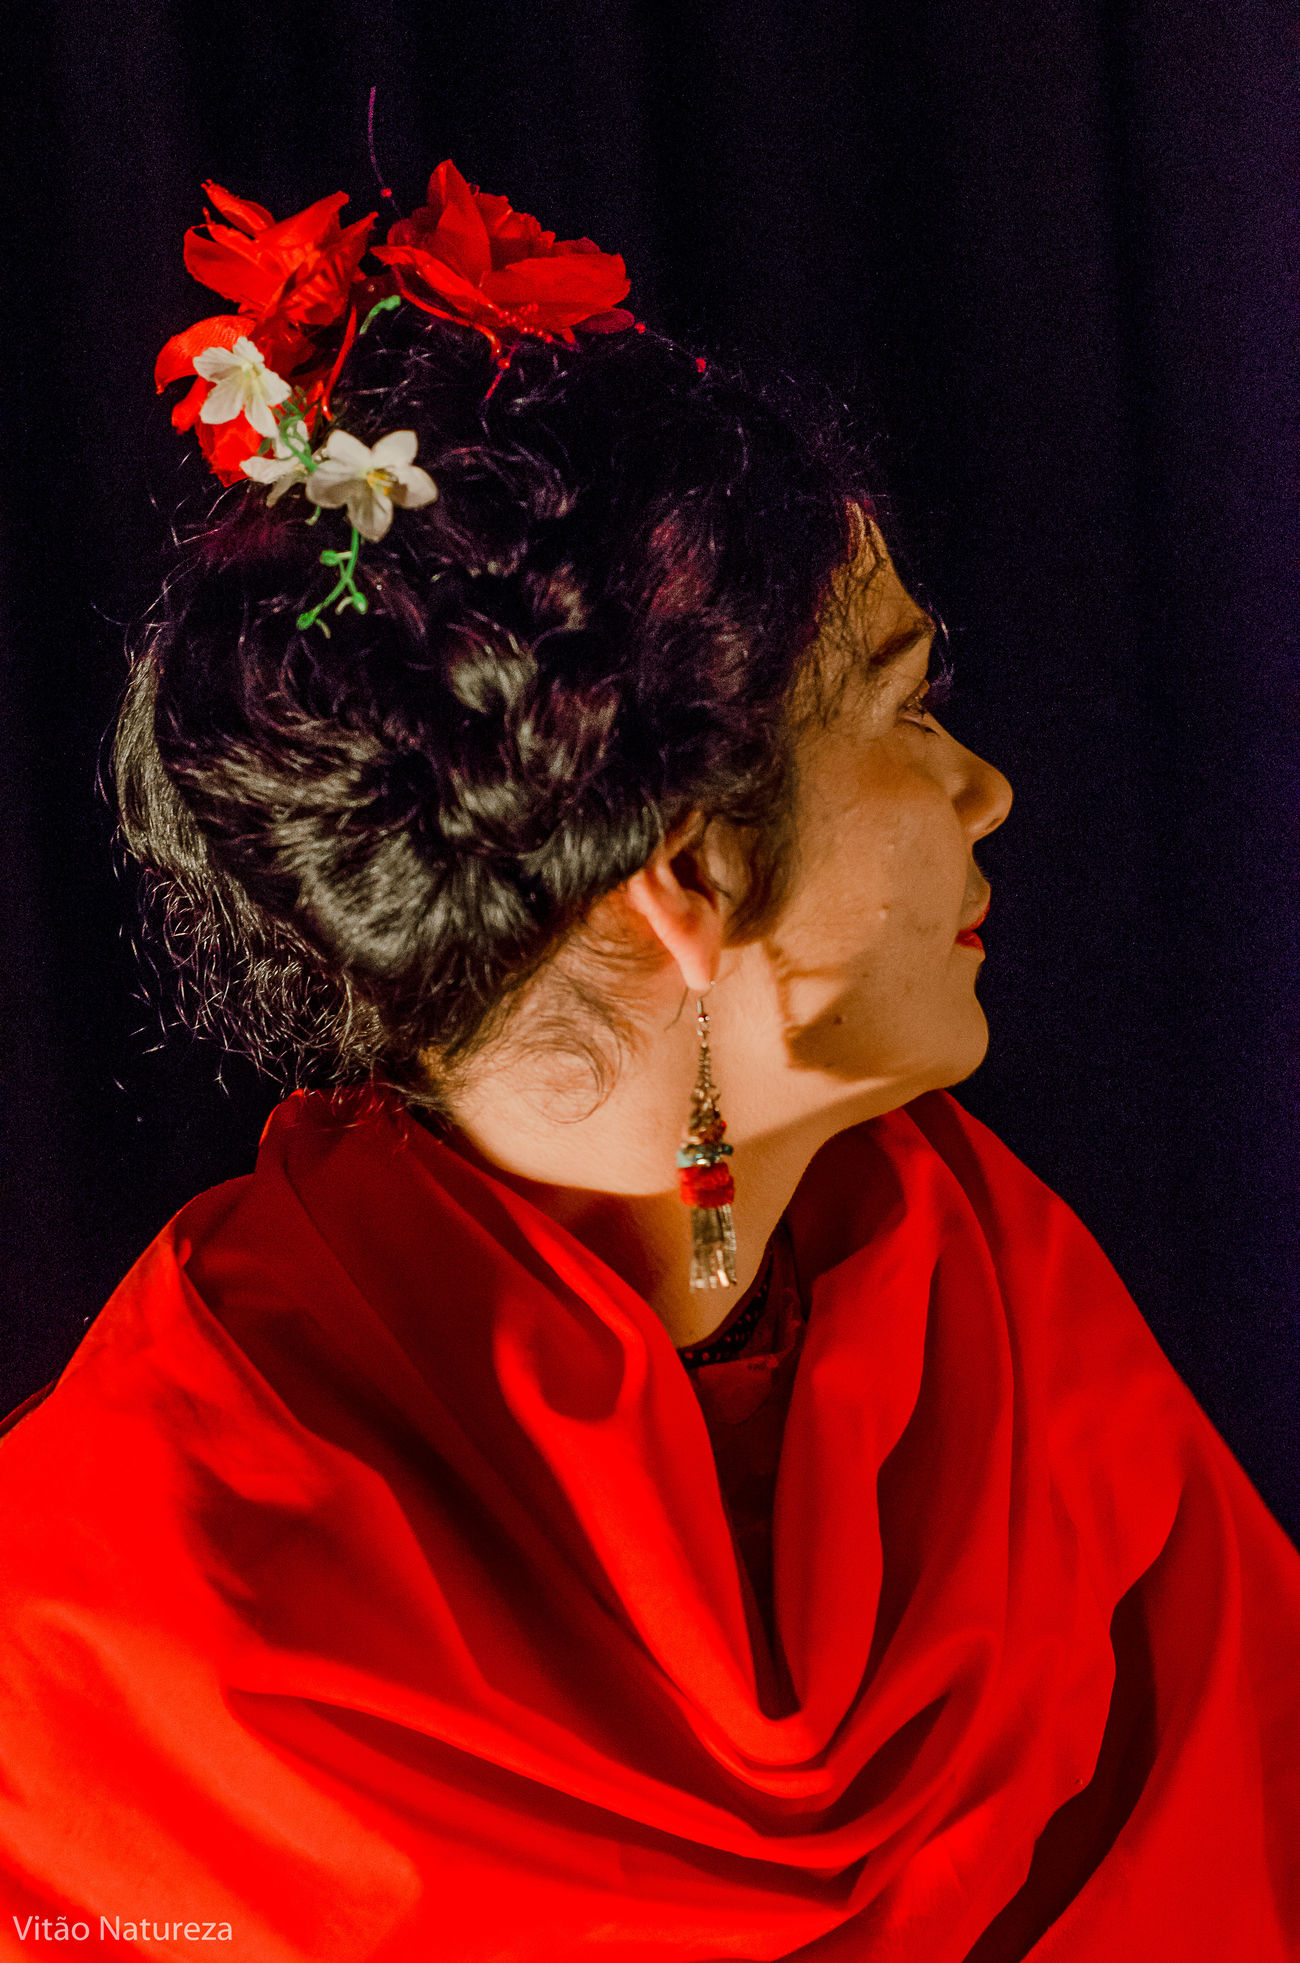 Kahlos Fotodocumental Fridakahlo Olharnatural Victornatureza Documentaryphotography Sombra Luz Teatro Performance